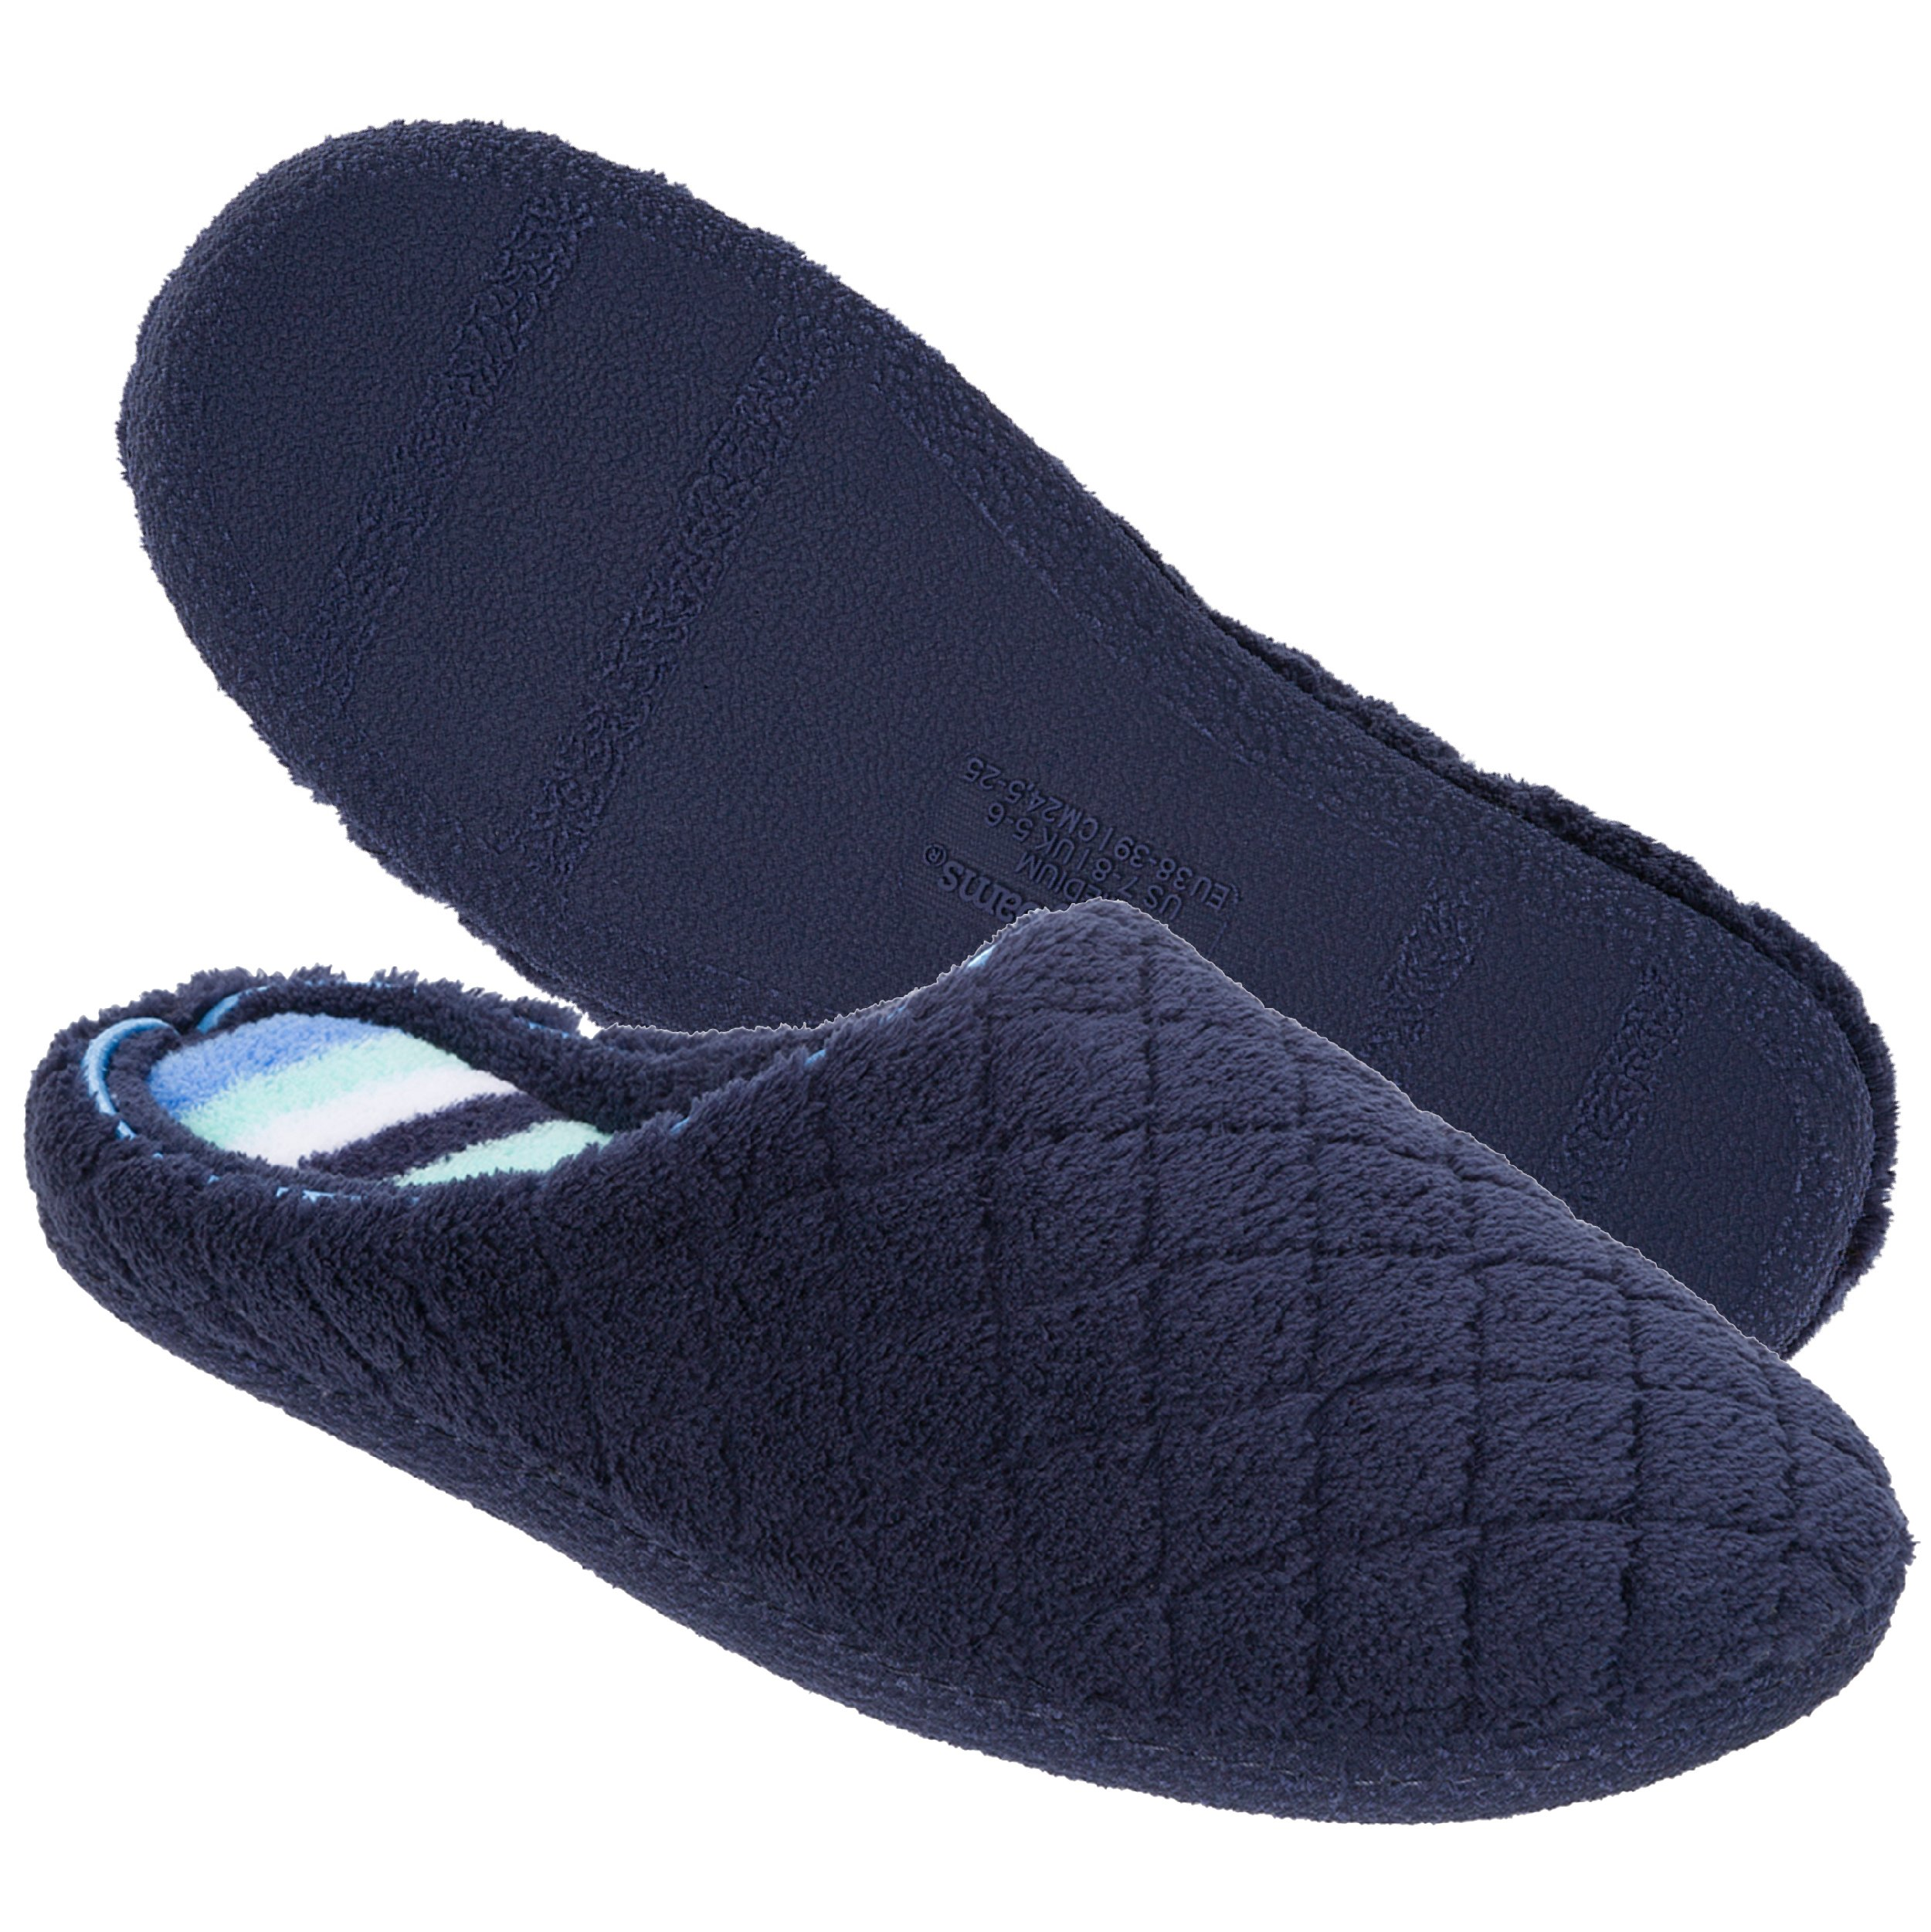 Dearfoams Women's Quilted Terry Clog Mule Slipper – Padded Terrycloth Slip-ONS with Skid-Resistant Rubber Outsole, Peacoat, Medium/7-8 M US